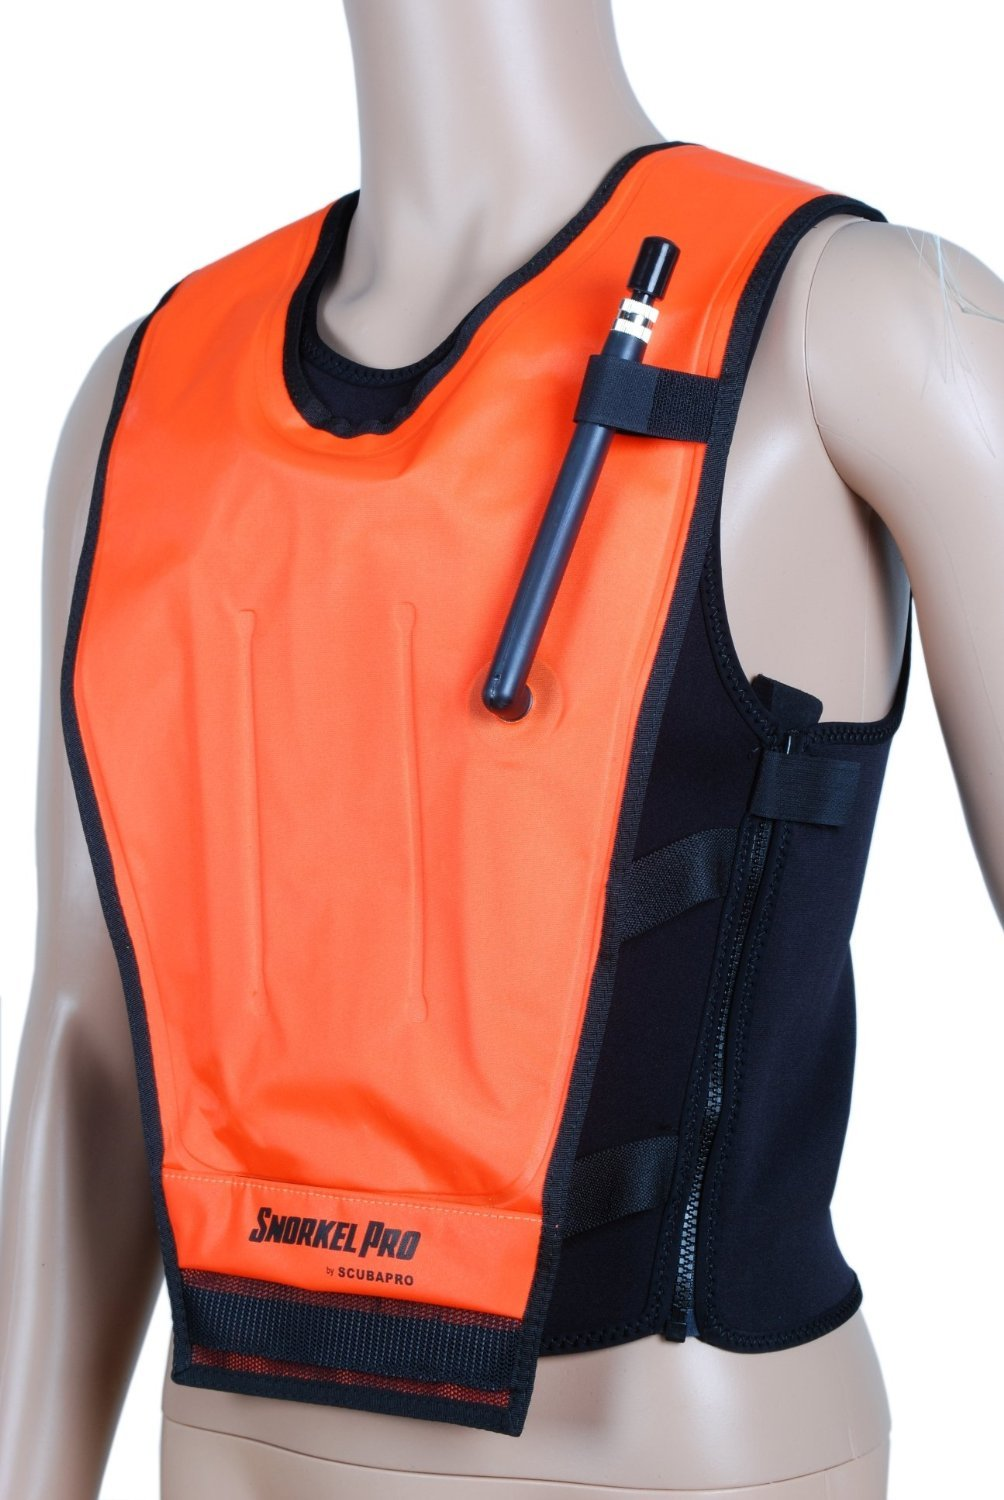 Scubapro Cruiser Skin Dive Safety Snorkeling Vest, Medium, Orange